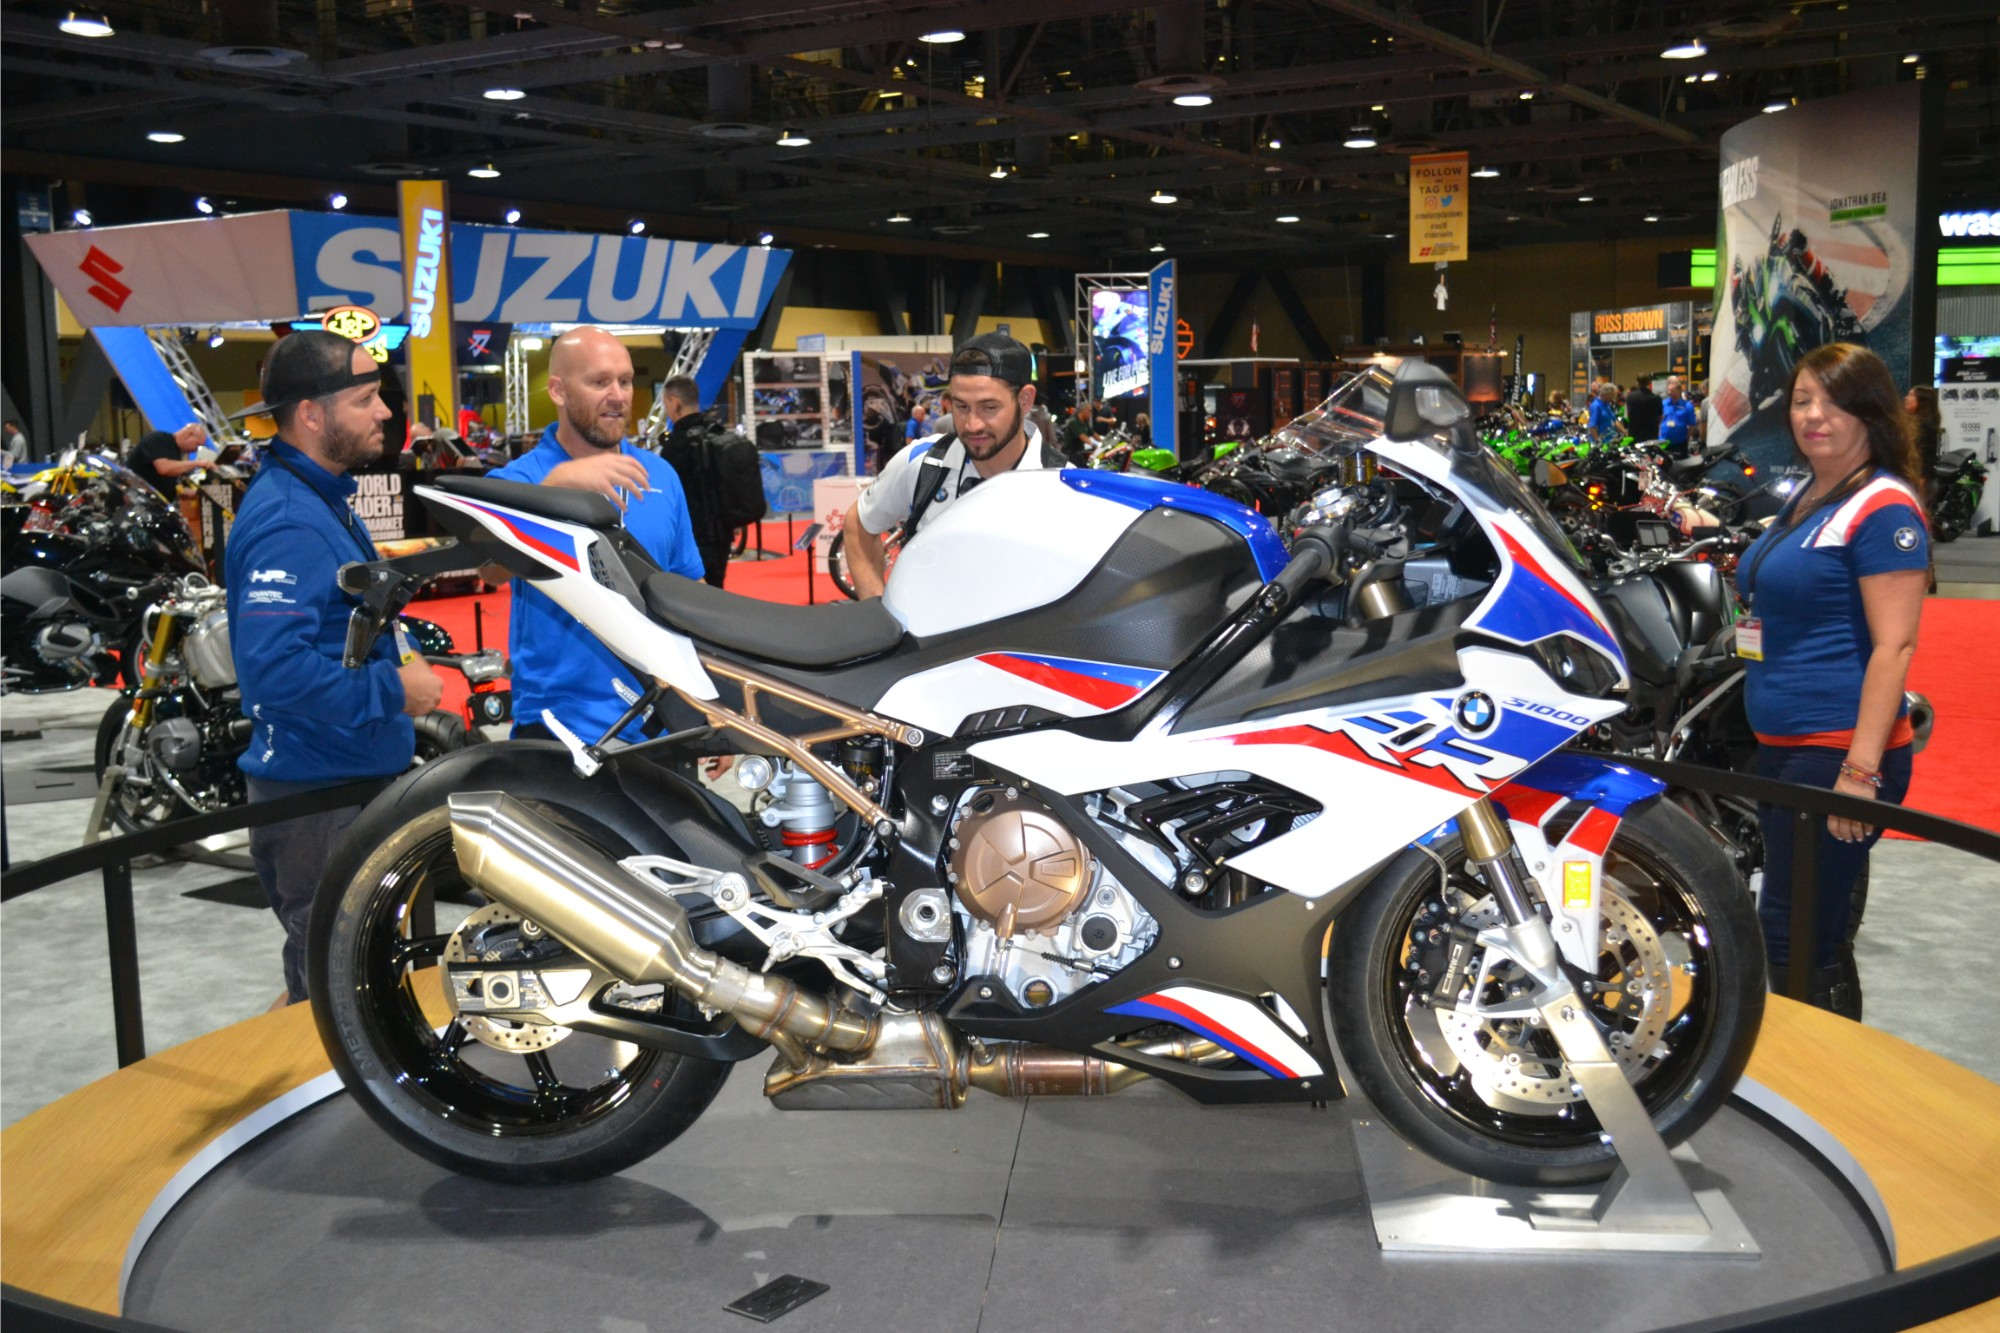 Motorcycle Events September 2020.International Motorcycle Show Announces 2019 2020 Dates